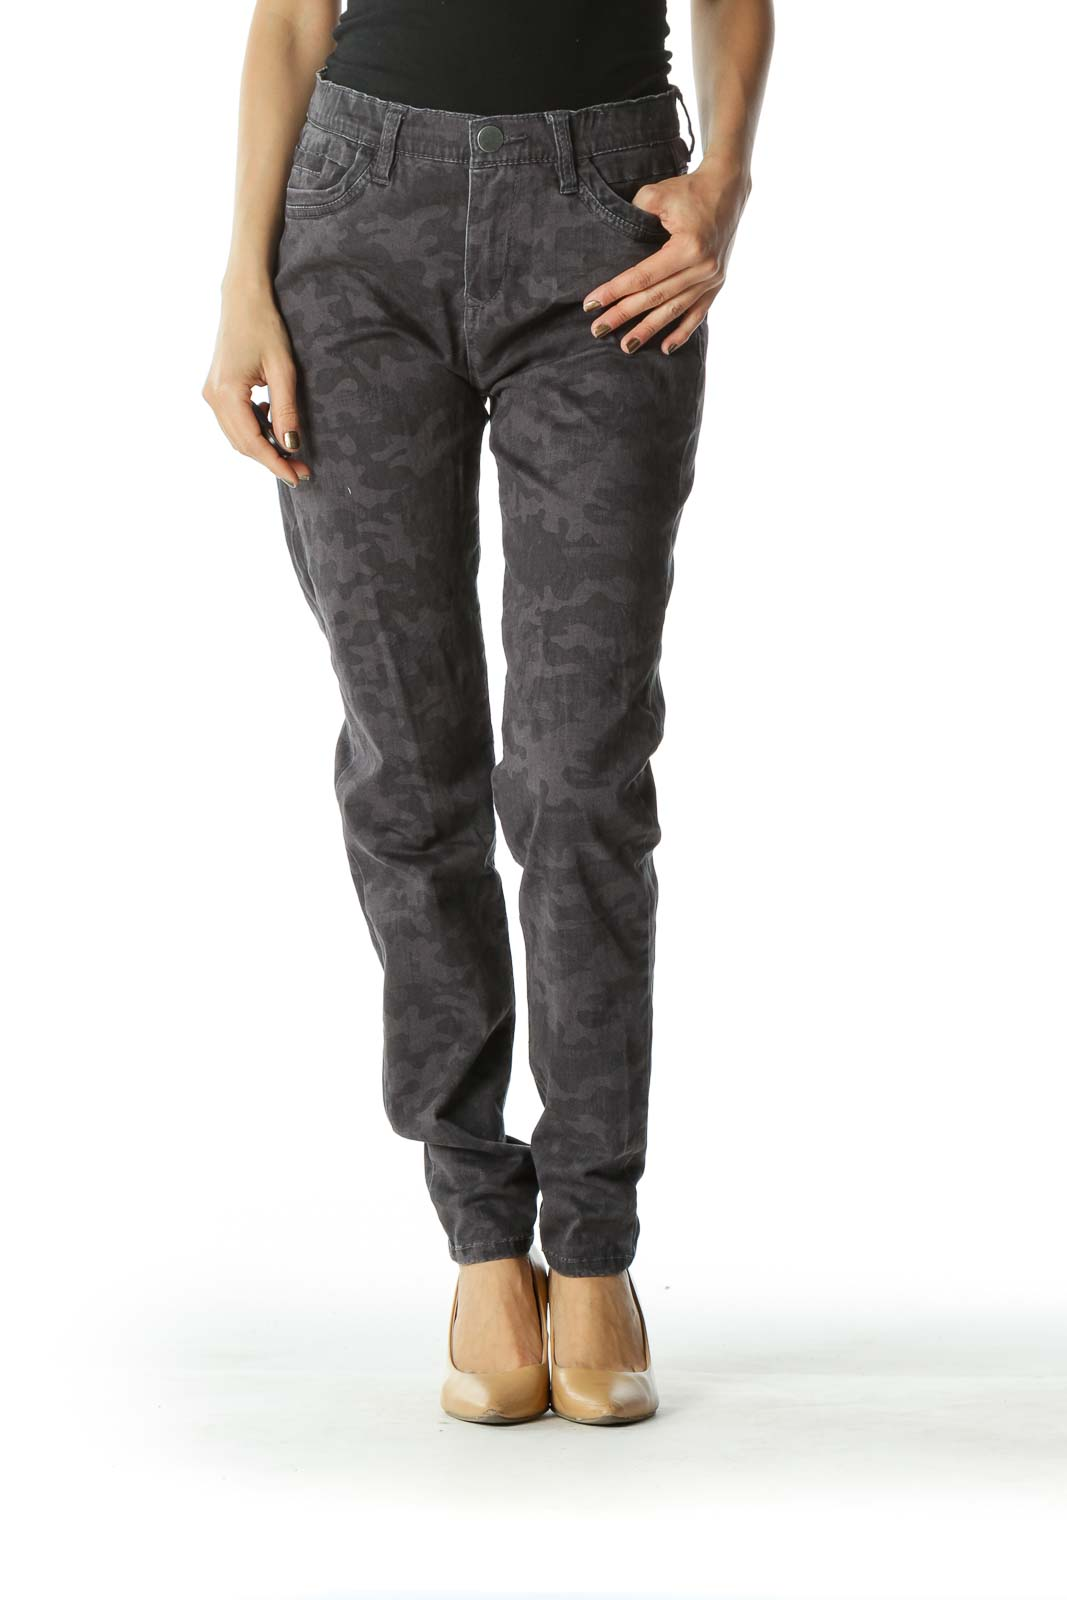 Black and Gray Faded Camouflage Skinny Pants  Front